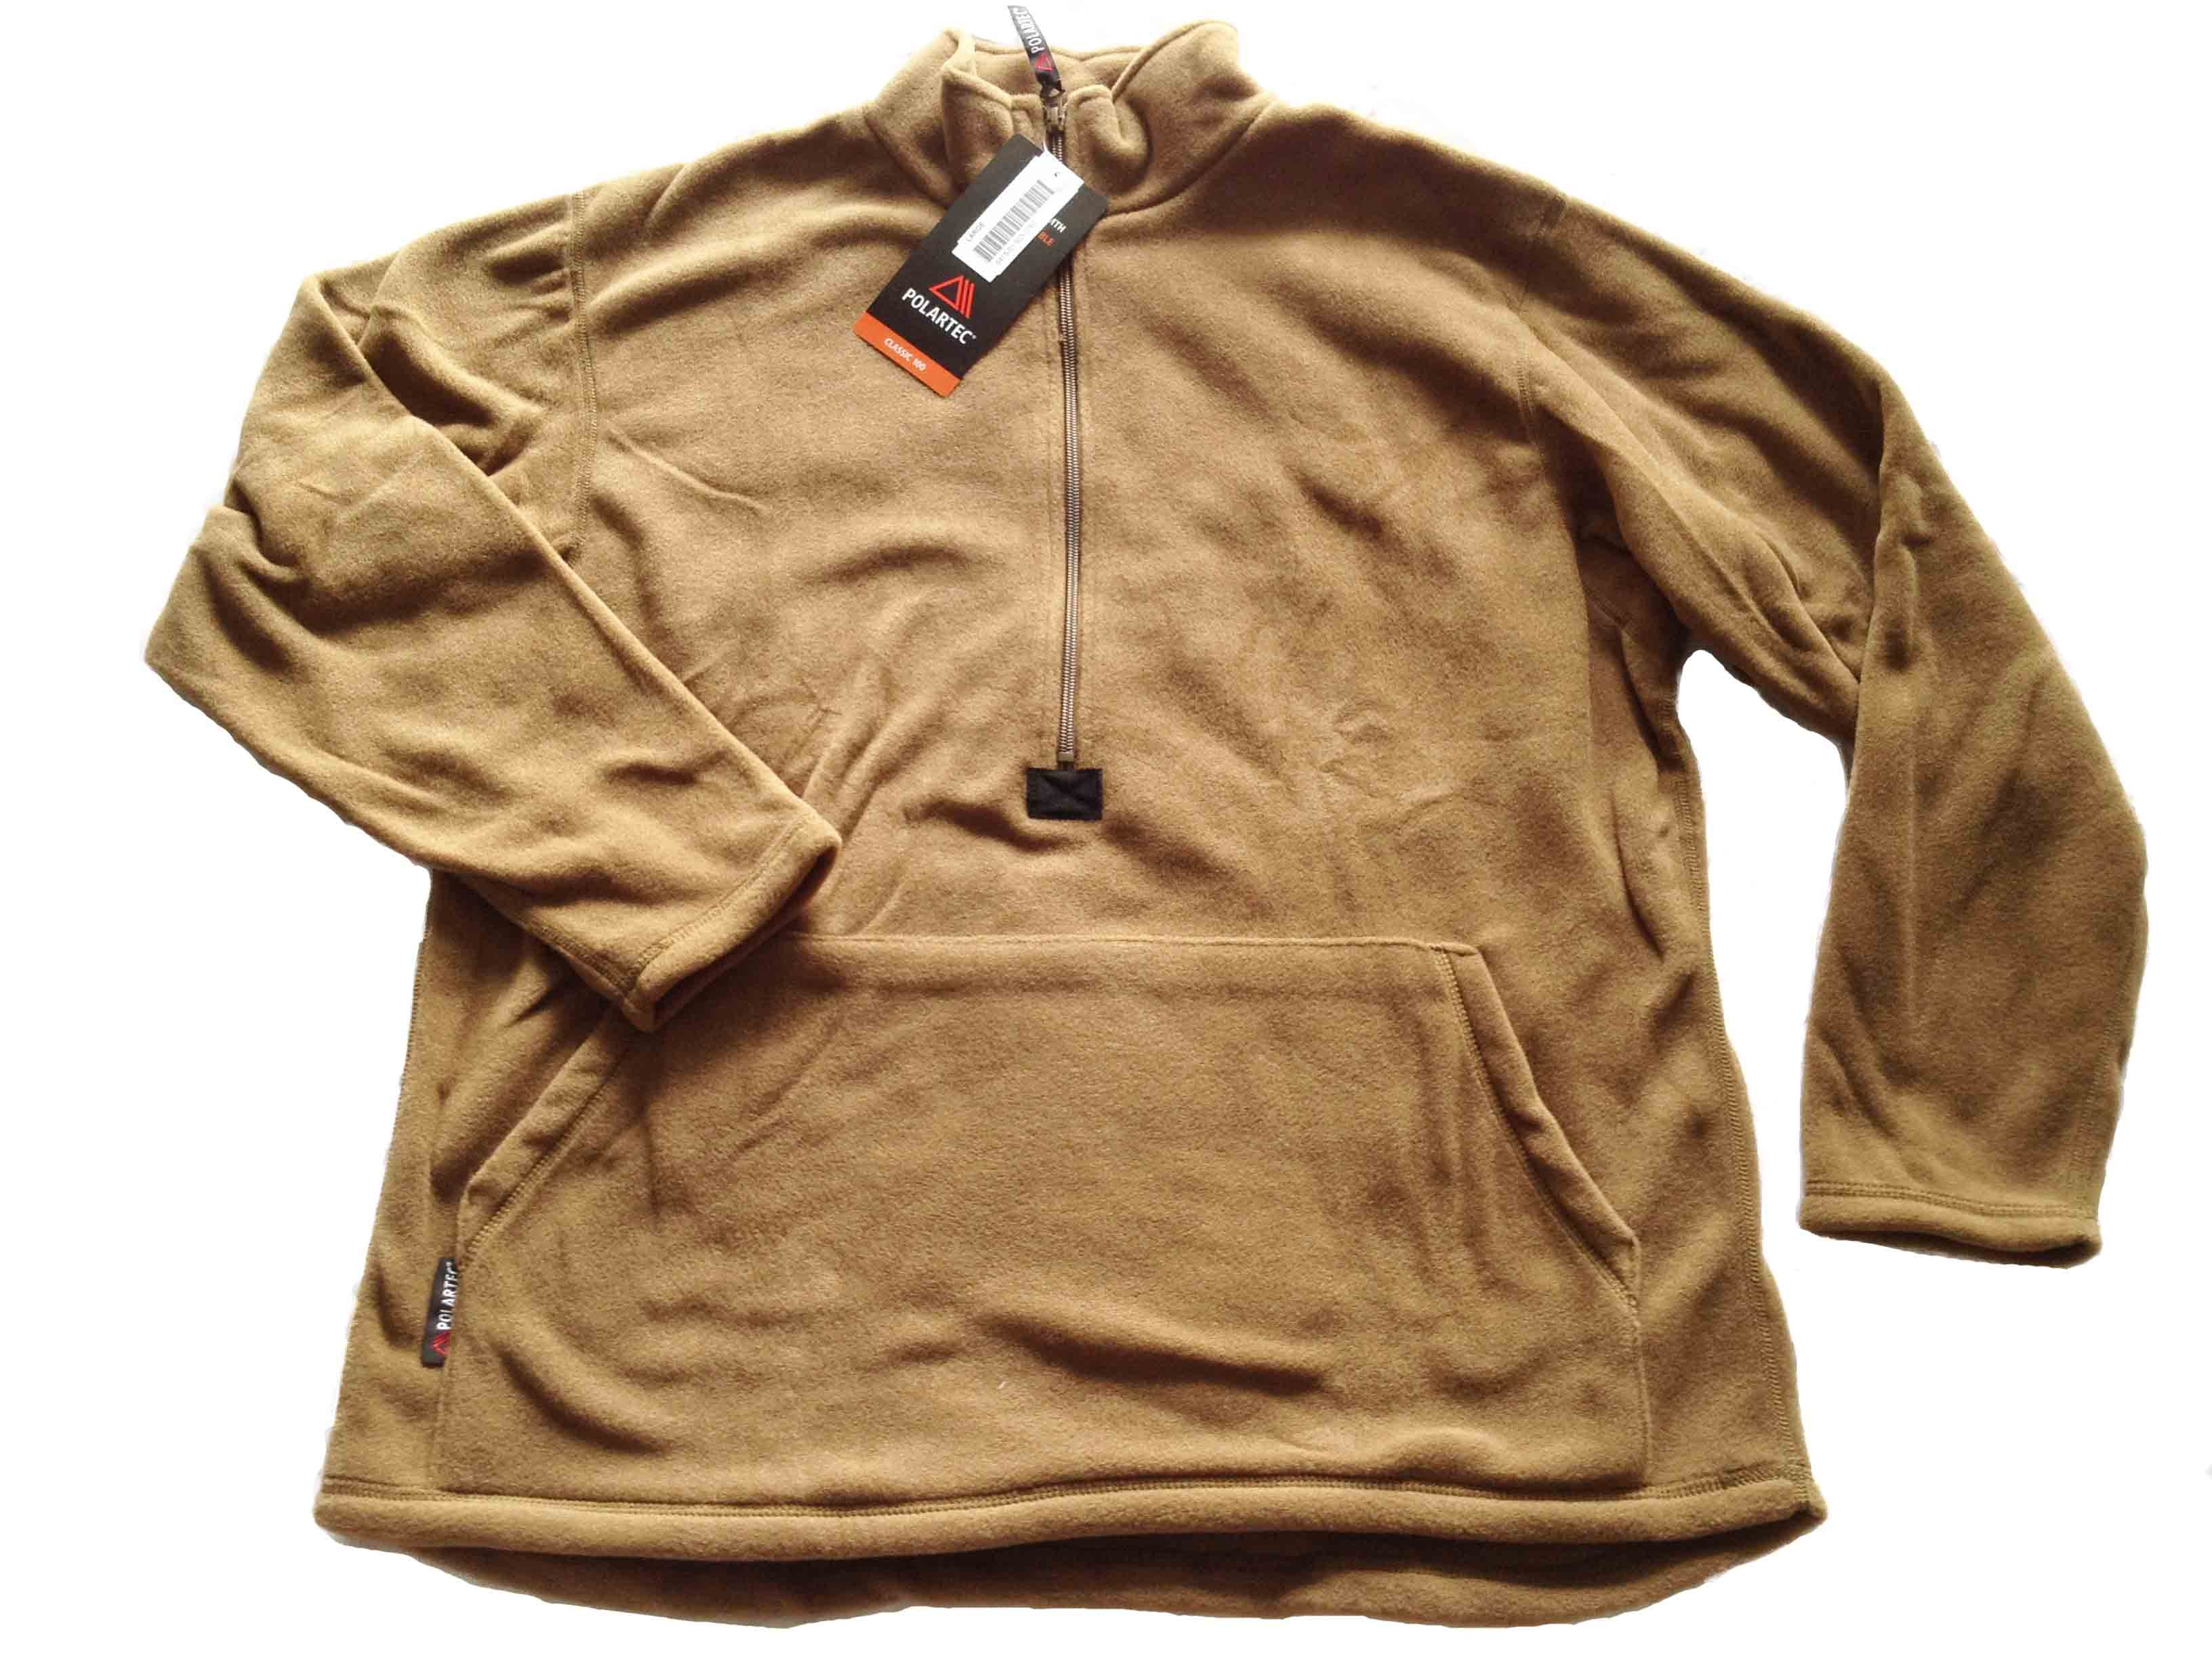 Polartec USMC Military Half-Zip Pullover Fleece Jacket - Hank's ...